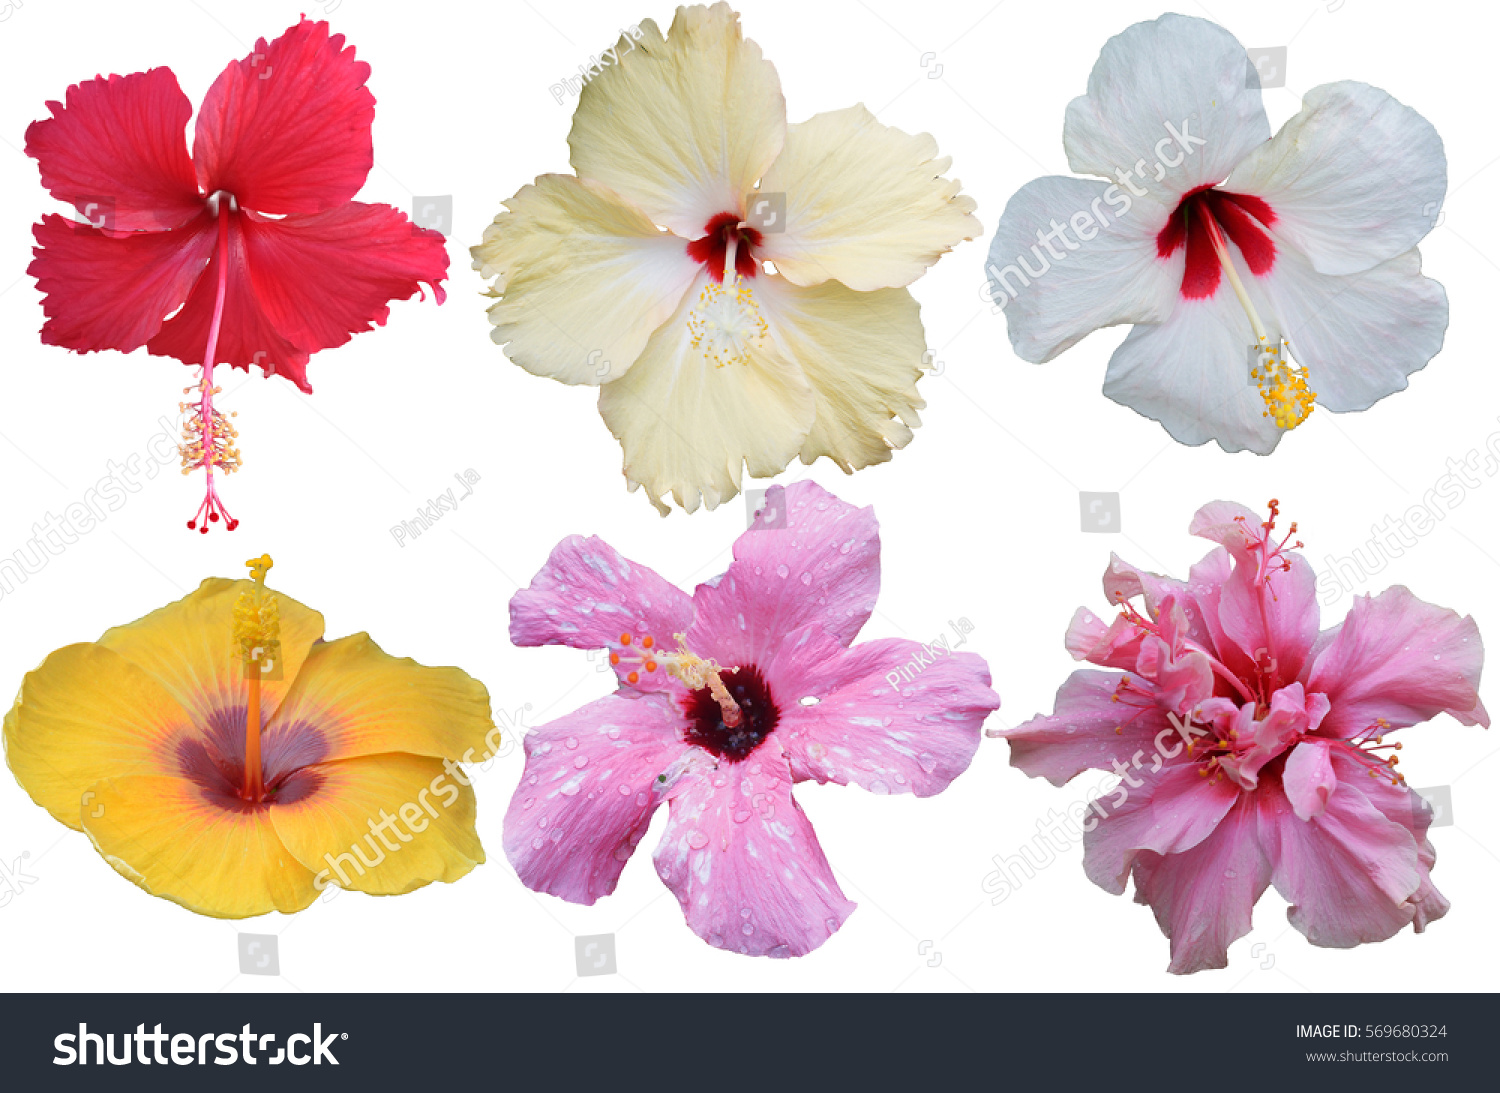 Hibiscus flower isolated flower die cut stock photo edit now hibiscus flower isolated flower die cut with path izmirmasajfo